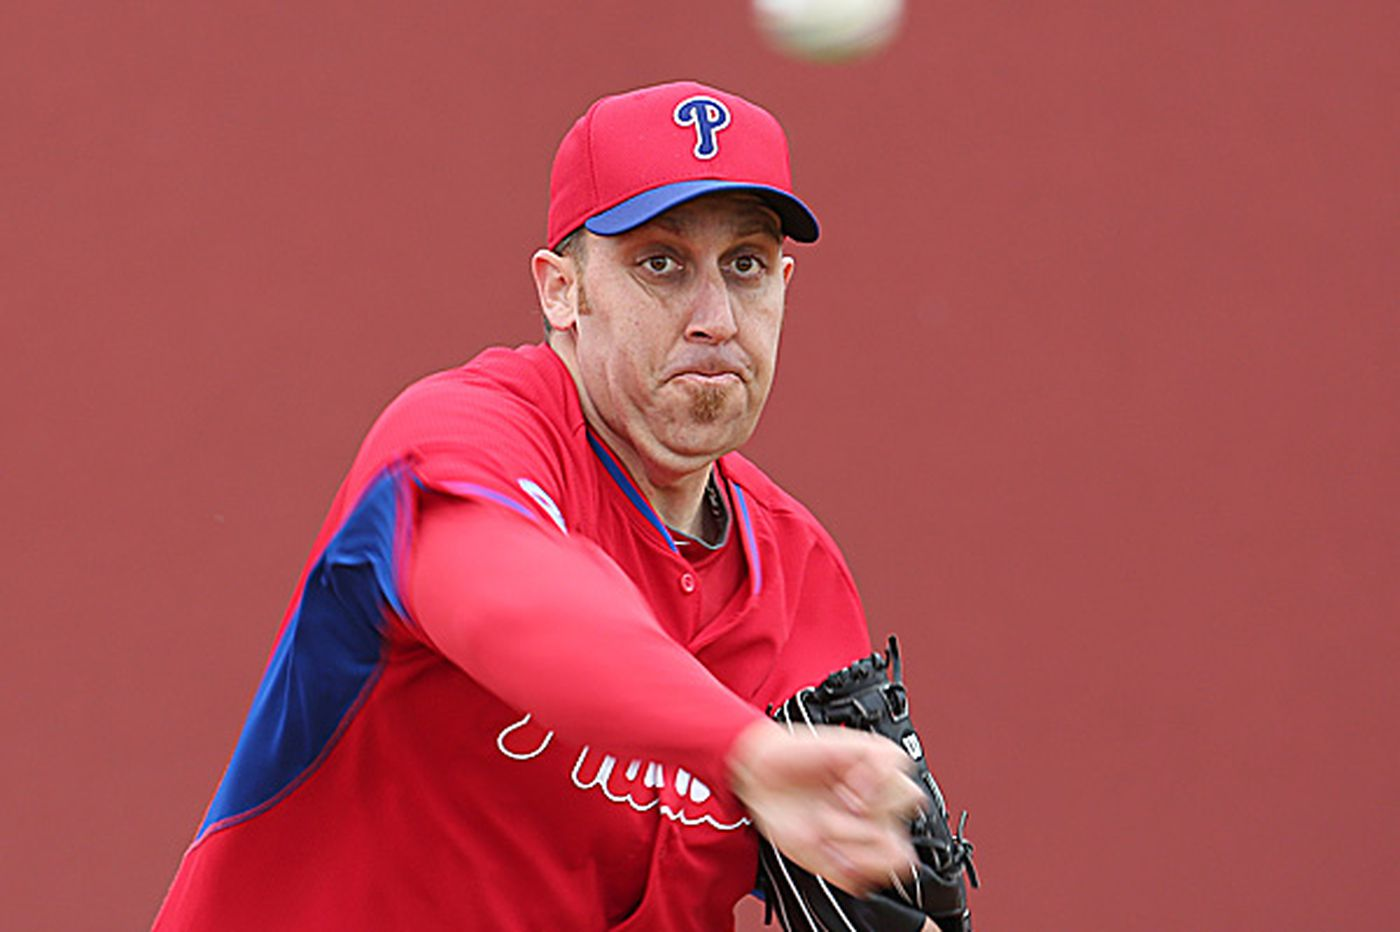 Lee's injury increases Harang's importance to Phillies